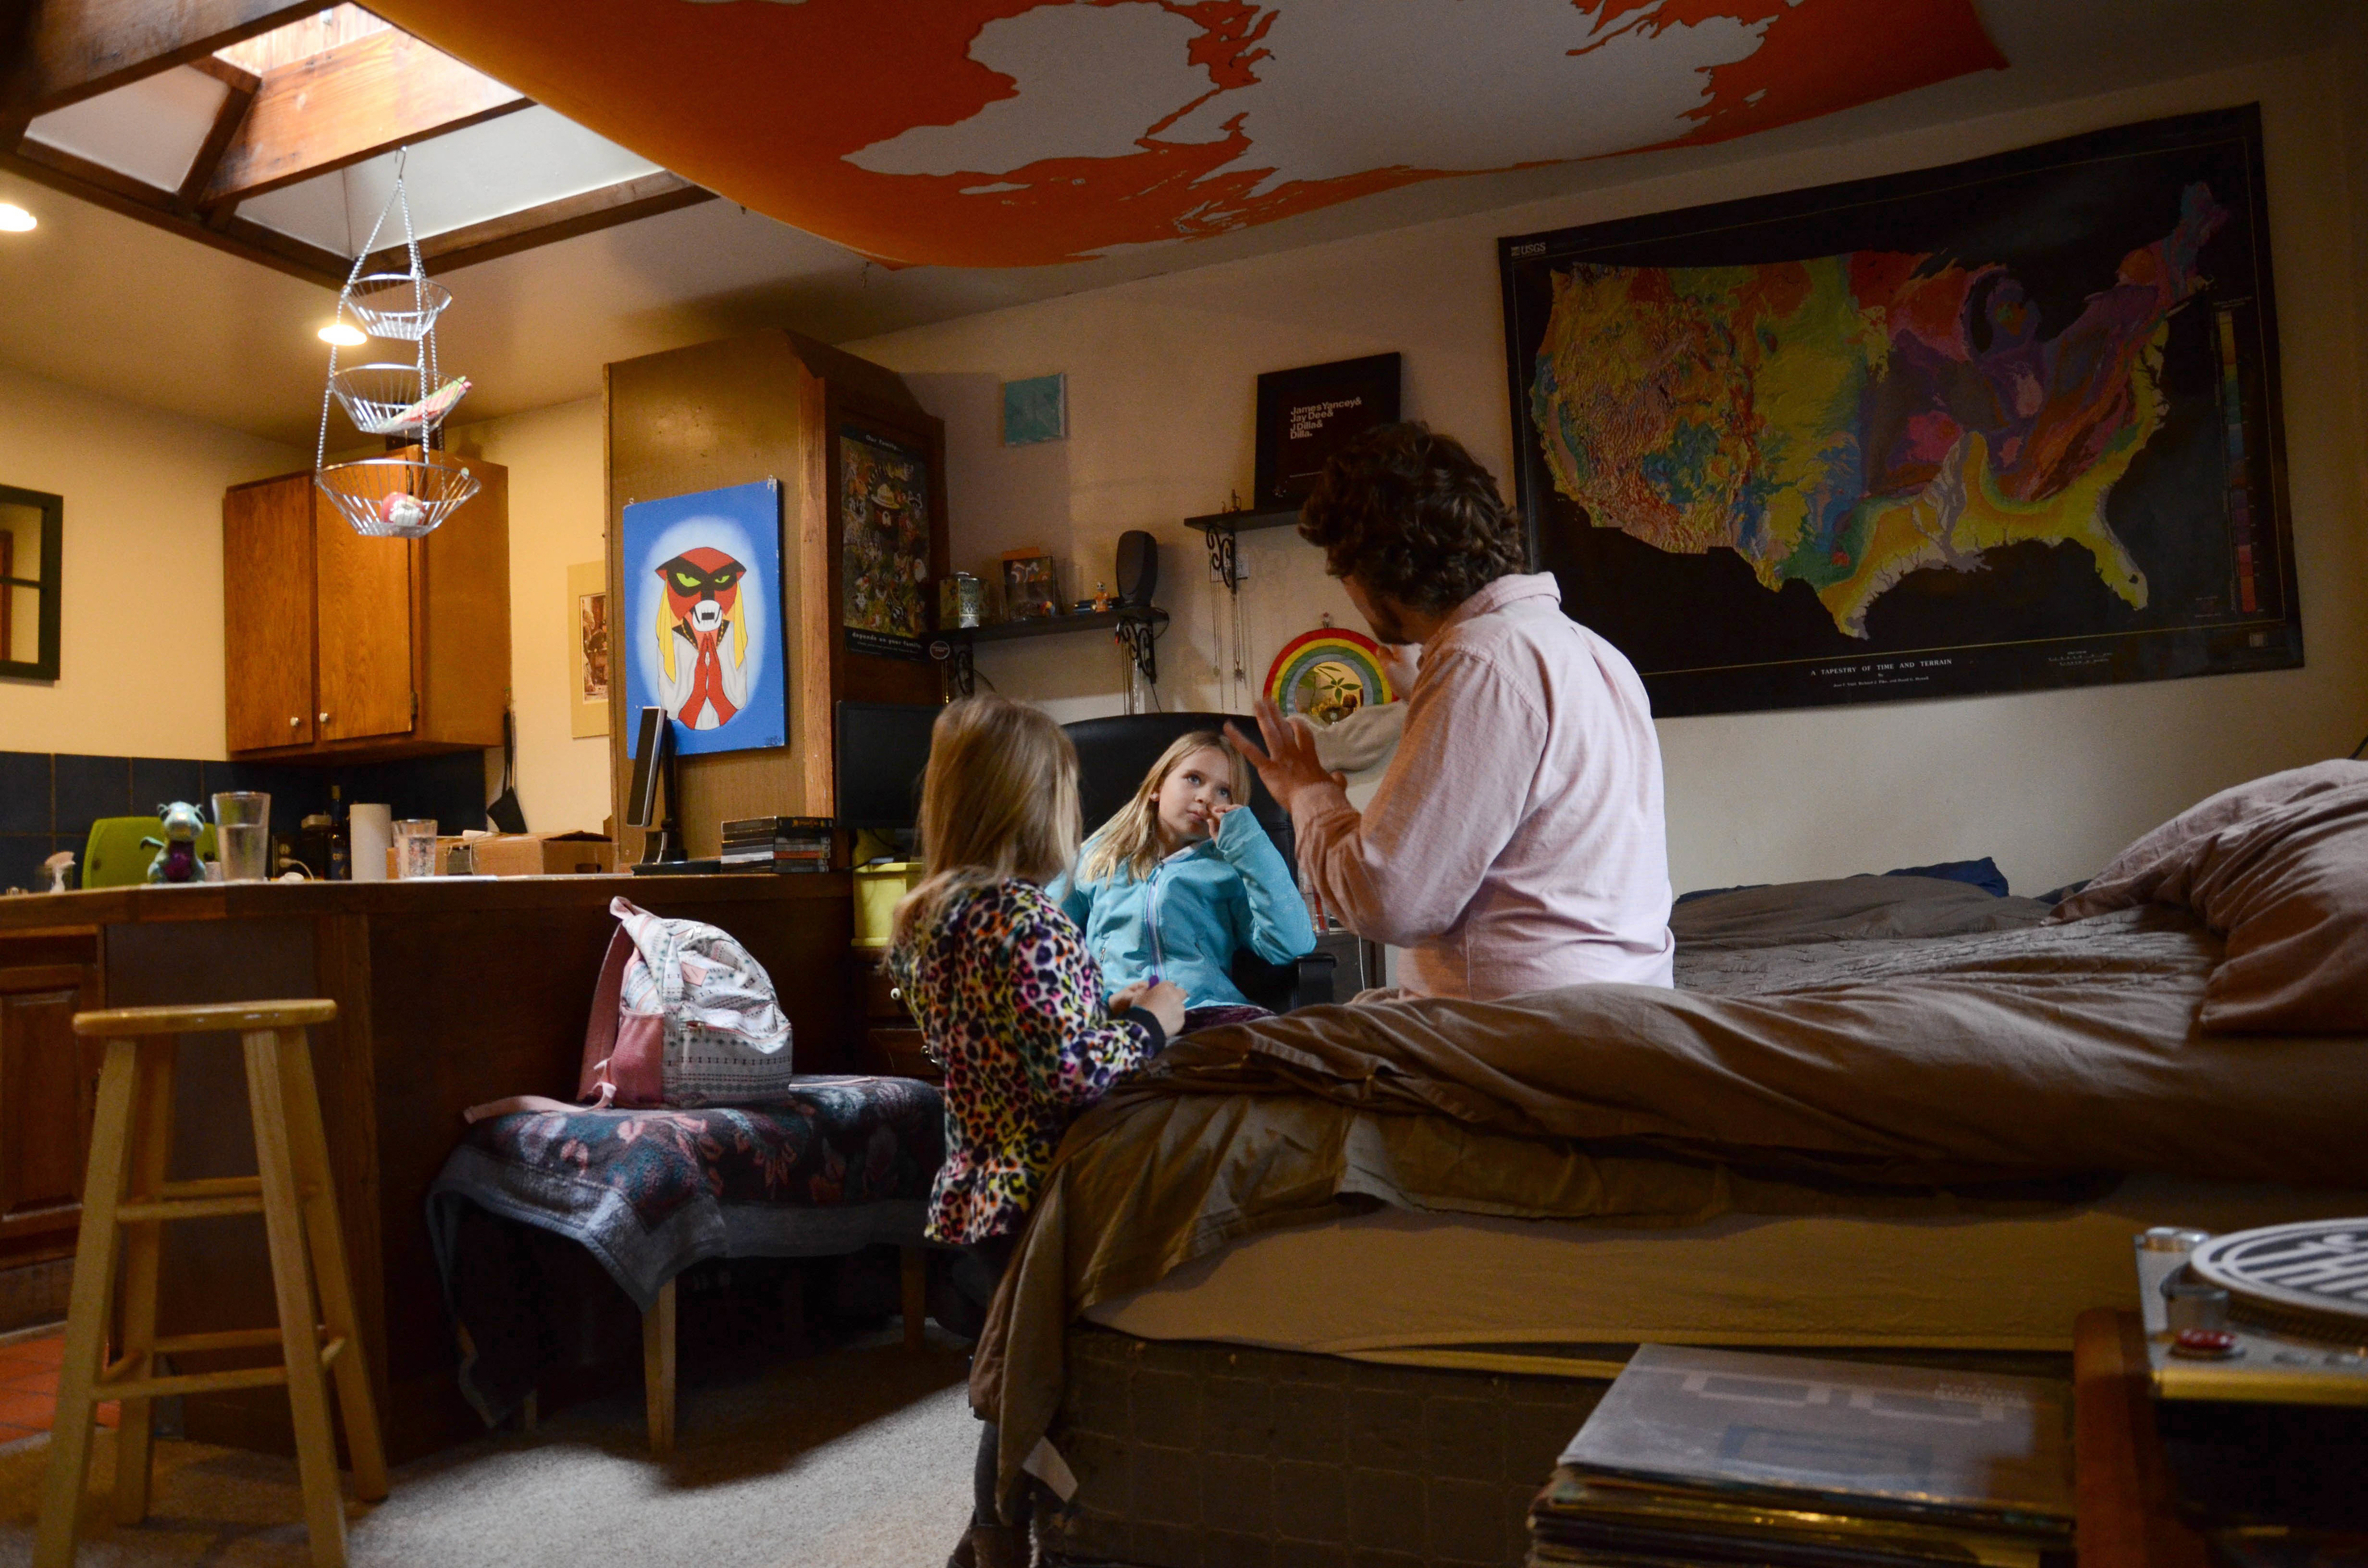 FILE - In this Nov. 28, 2017, file photo, TC Bell sits with his two daughters Dagny, and Emma, before they get dressed for school, at their home in Denver. Bell's daughters were then recipients of the Children's Health Insurance Program or CHIP, which is a program that provides low-cost coverage to families who earn too much to qualify for Medicaid. Health care proposals are among the first actions for some new Democratic governors and Democratically controlled legislatures.   (AP Photo/Tatiana Flowers, File)